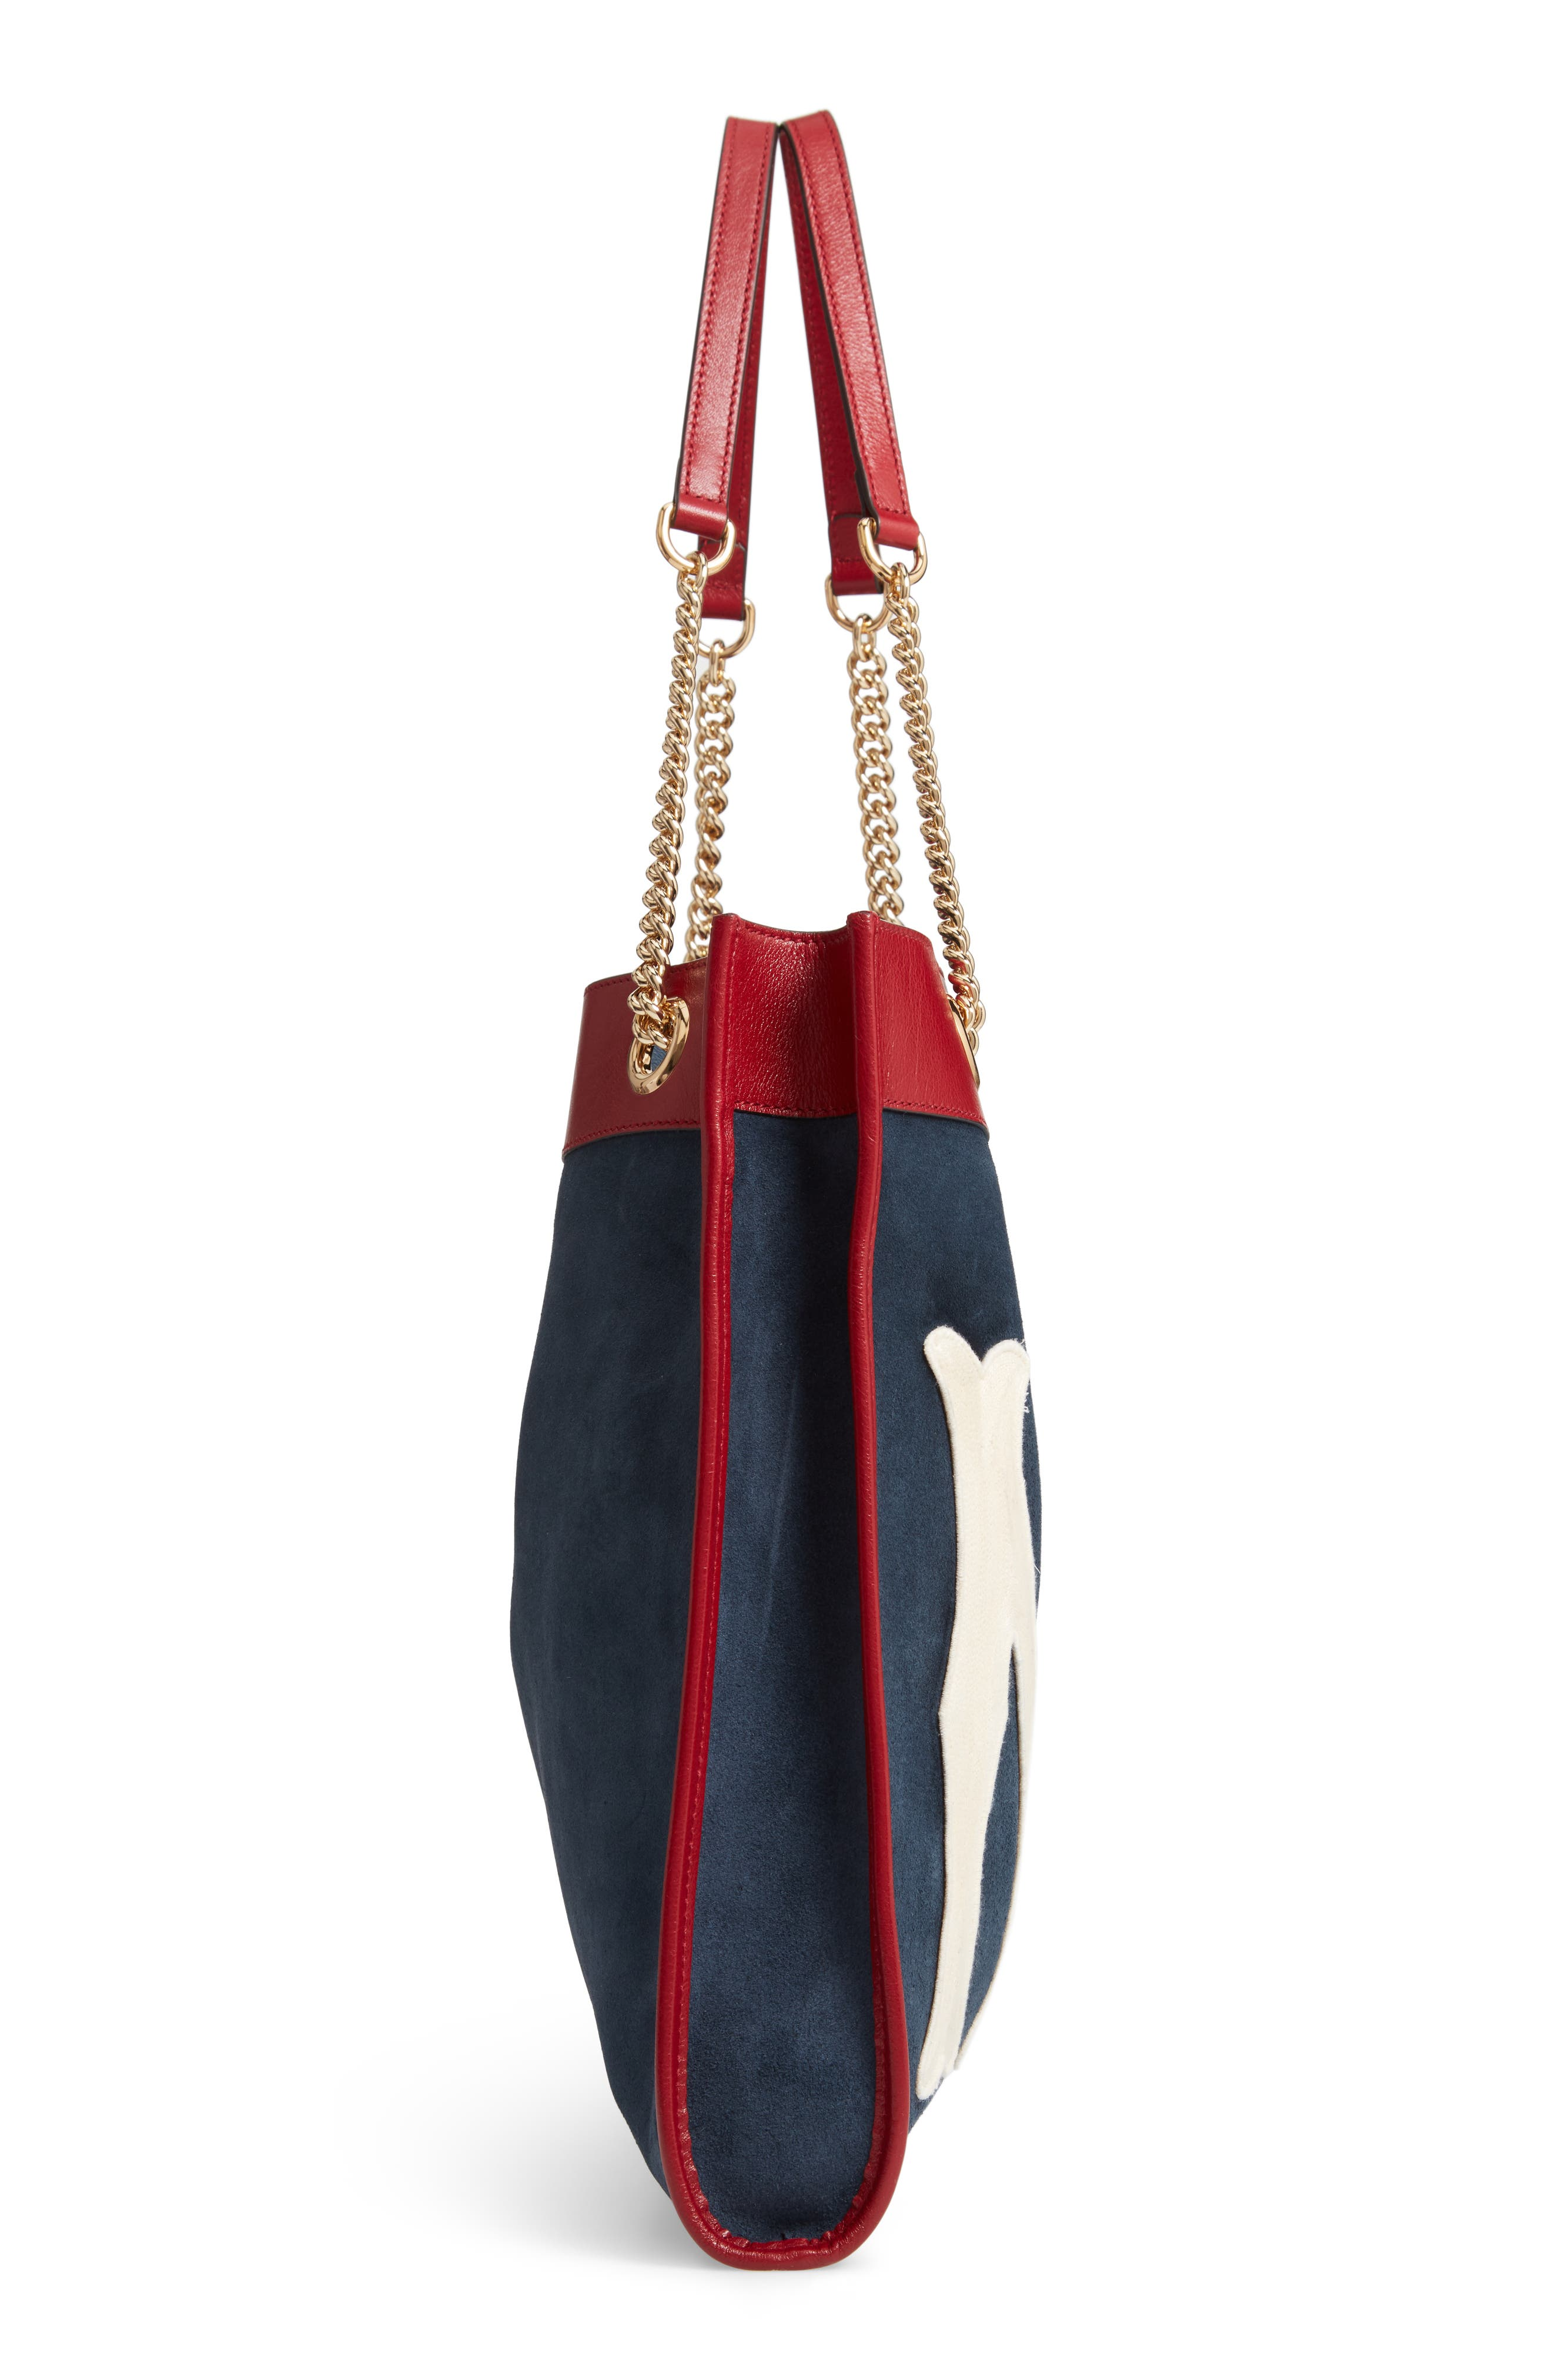 Linea Tiger NY Yankees Suede & Leather Tote,                             Alternate thumbnail 5, color,                             NEW BLUE/ CERISE/ BLUE RED